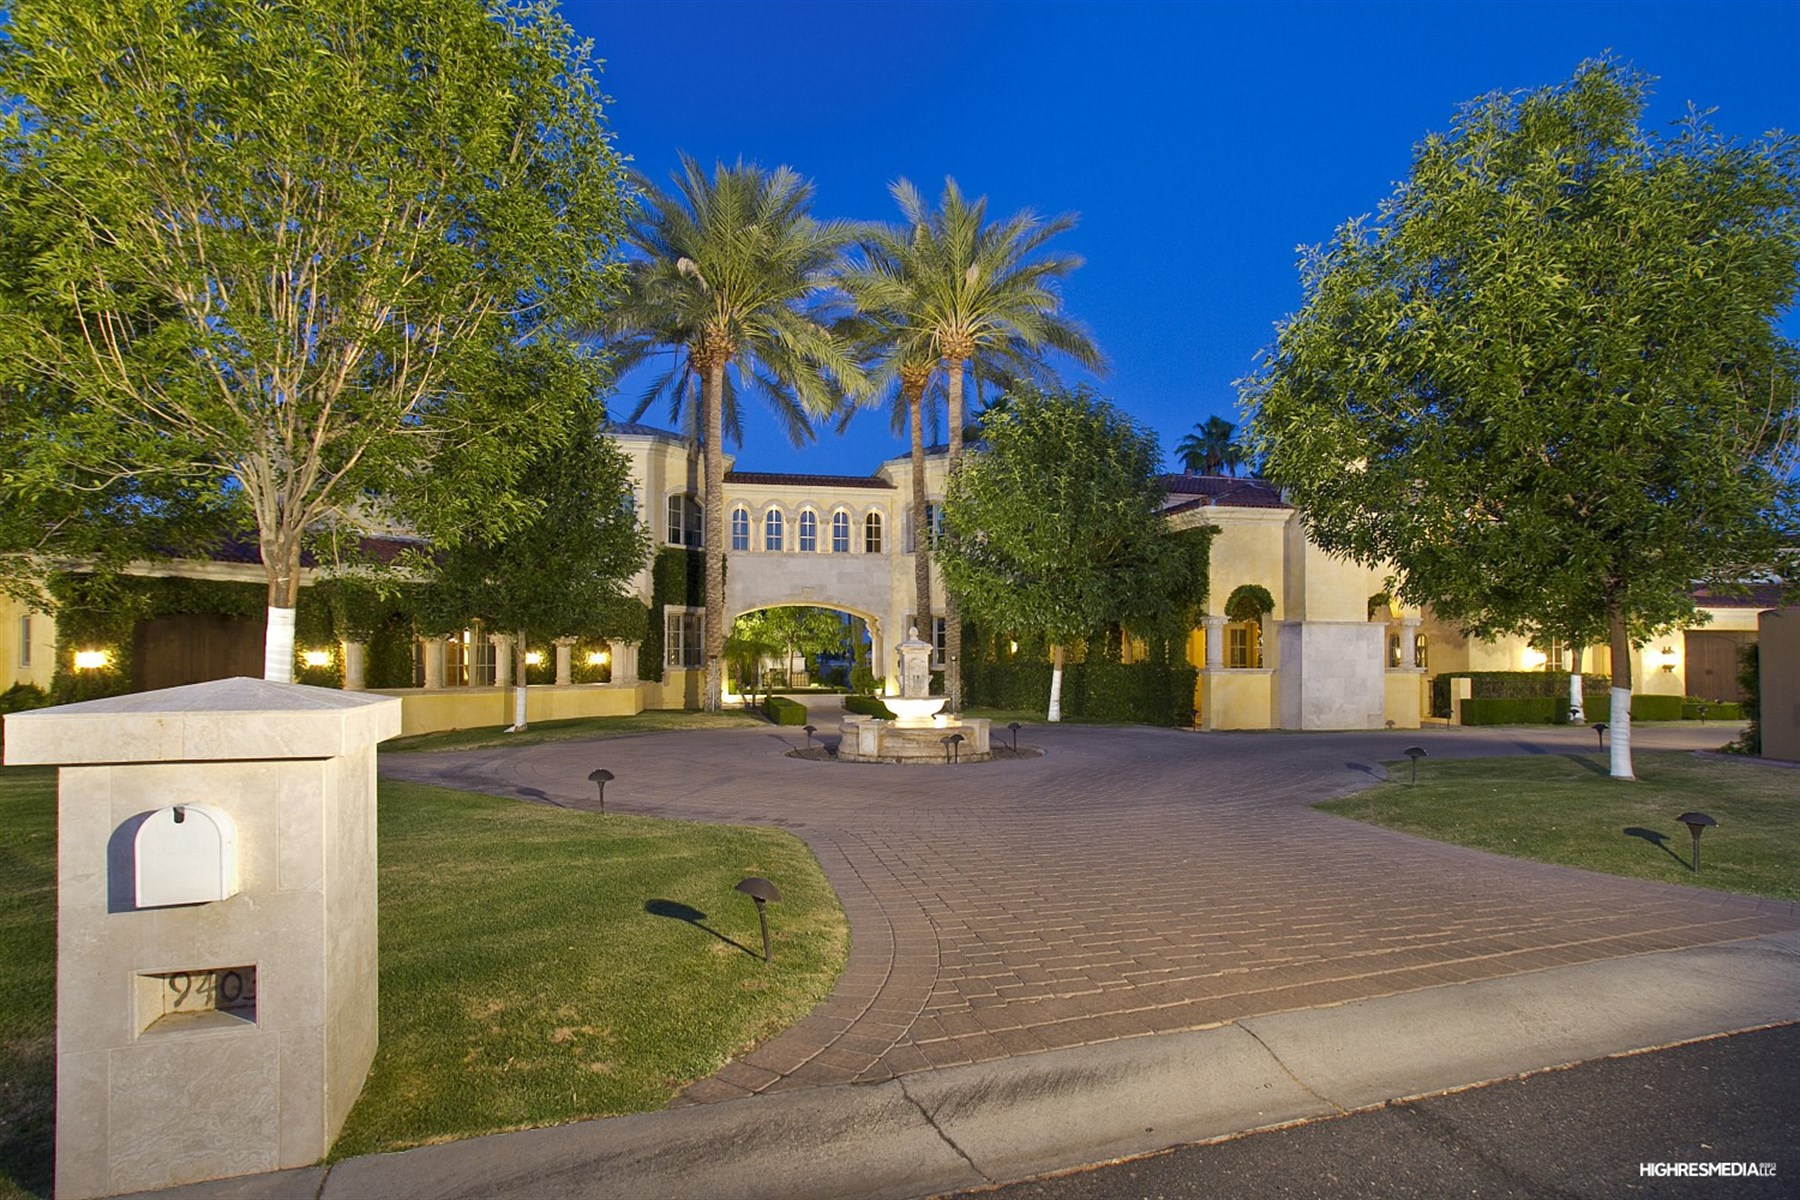 一戸建て のために 売買 アット Classic Mediterranean Design Grand Estate on the golf course. 9403 N 55 ST Paradise Valley, アリゾナ, 85253 アメリカ合衆国